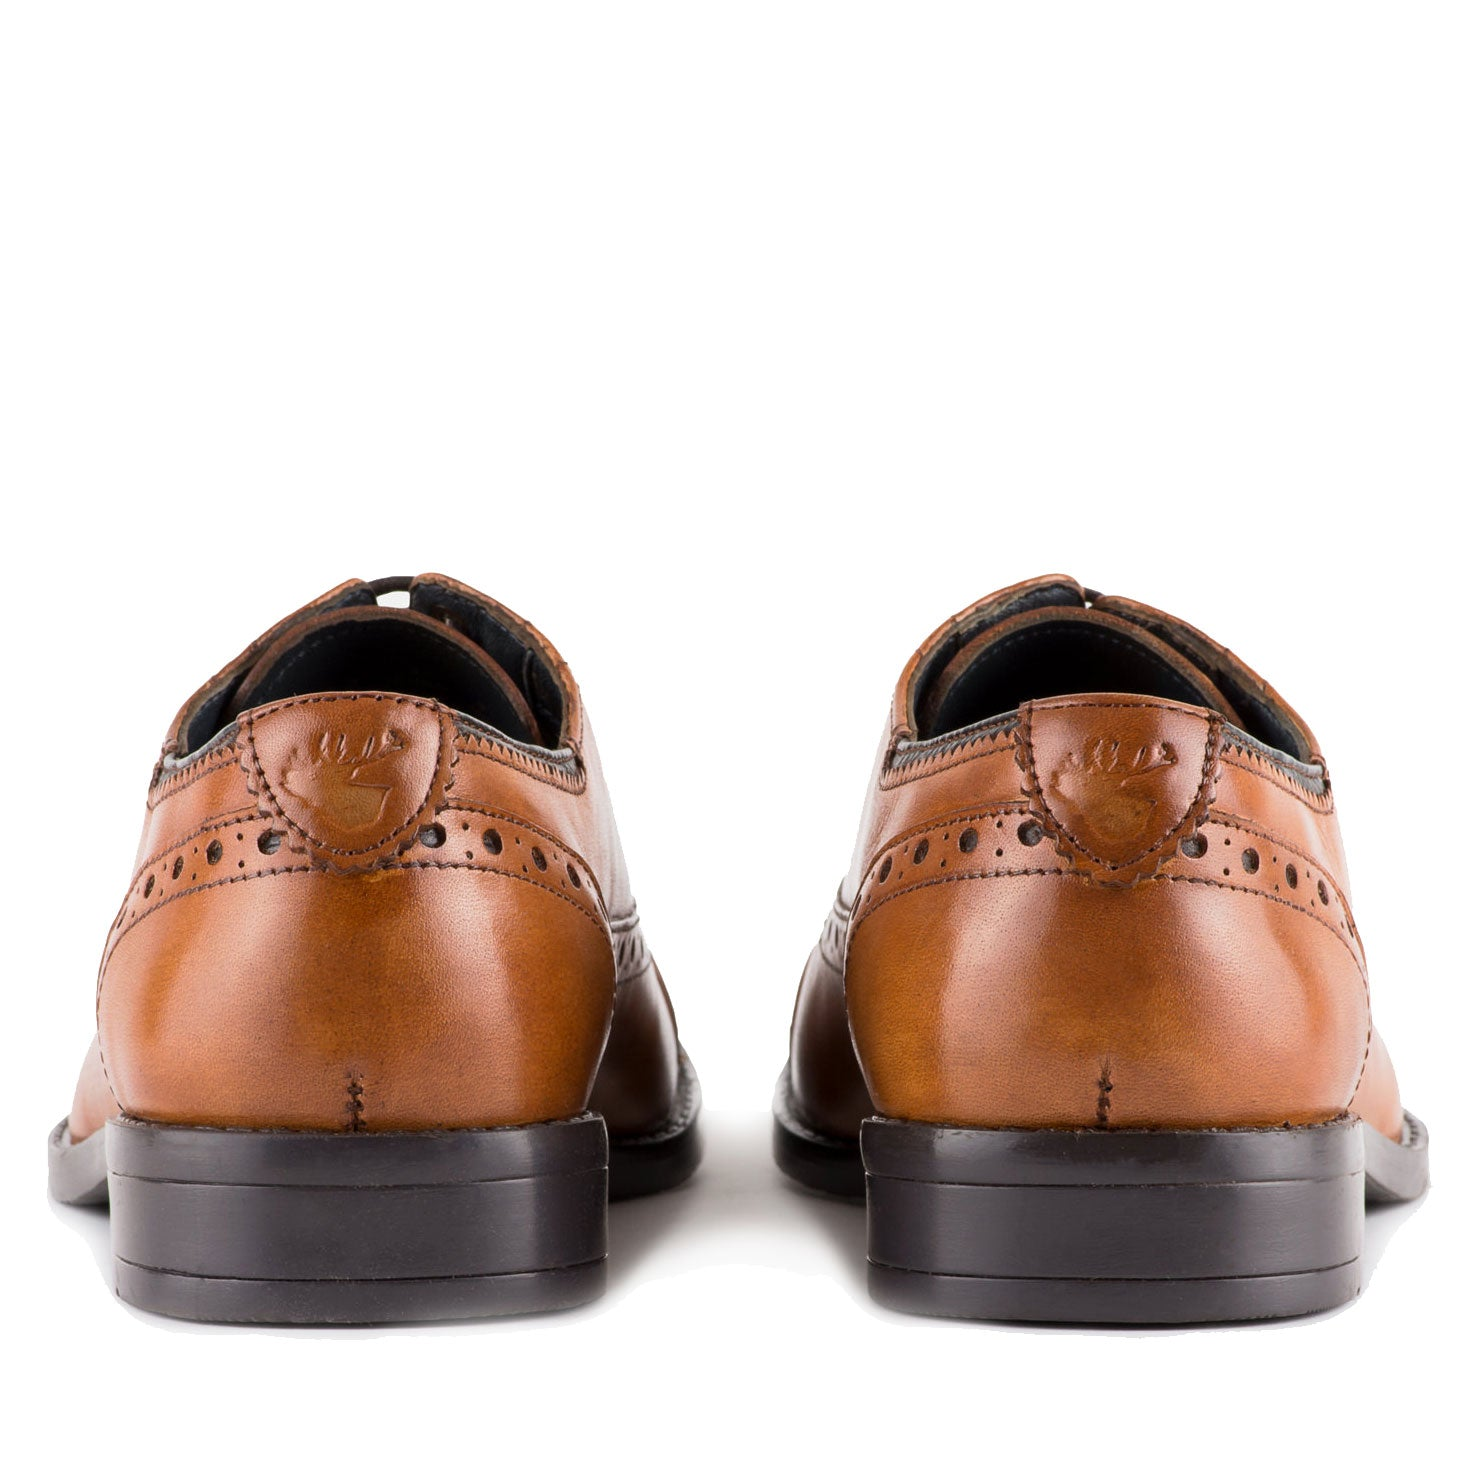 leather heel Rich tan leather Classic Oxford shoe in a subtle Semi Brogue